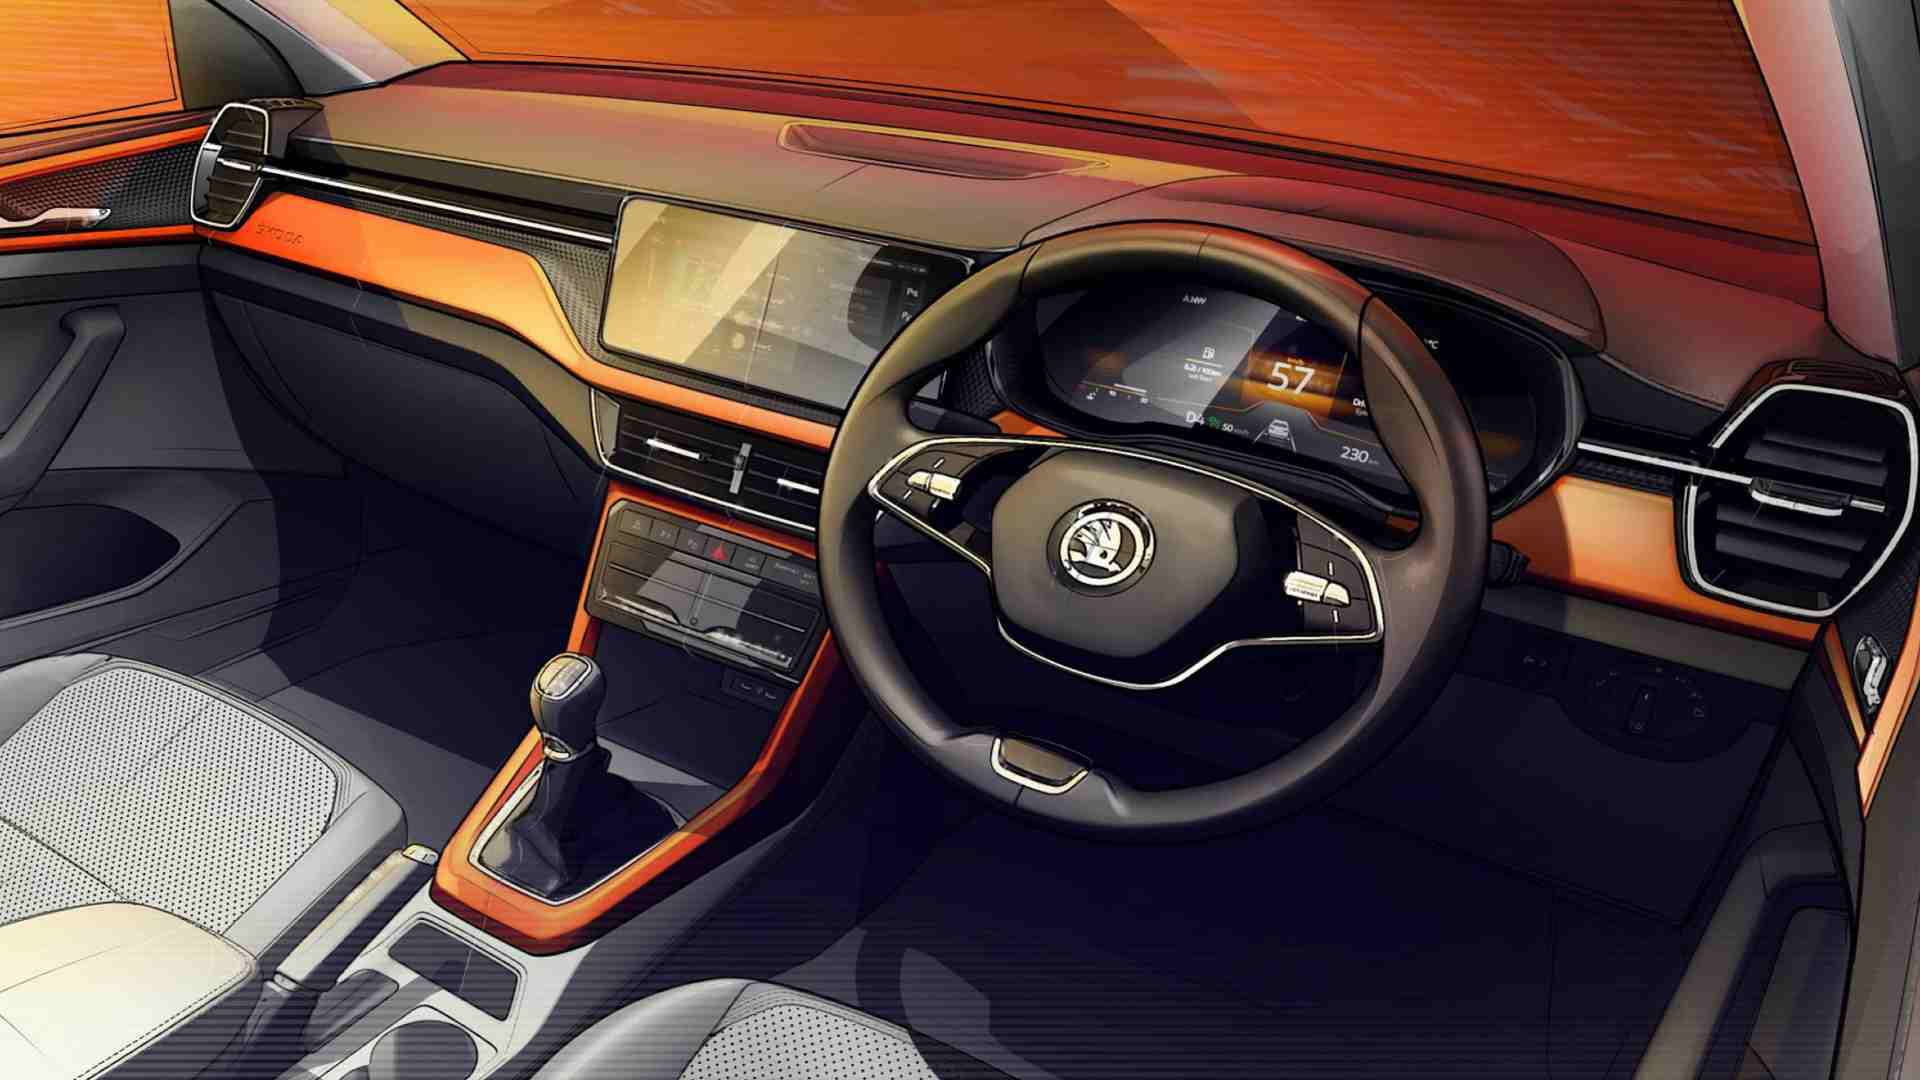 Skoda Kushaq interior previewed in design sketches, SUV to debut on 18 March- Technology News, FP